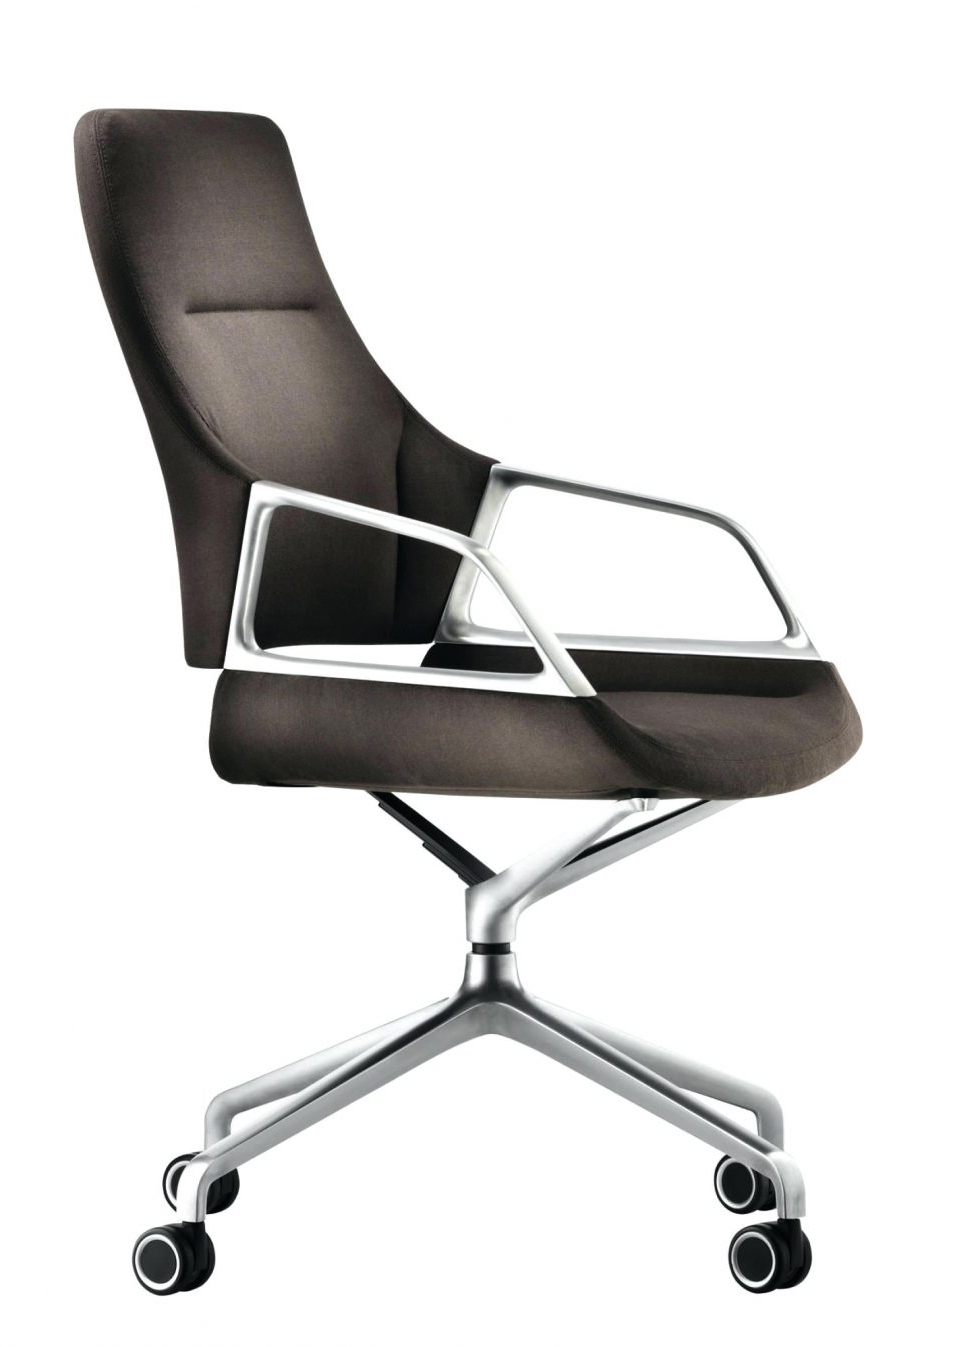 2018 German Executive Office Chairs Inside Articles With German Made Office Furniture Tag: German Office Chairs (View 4 of 20)